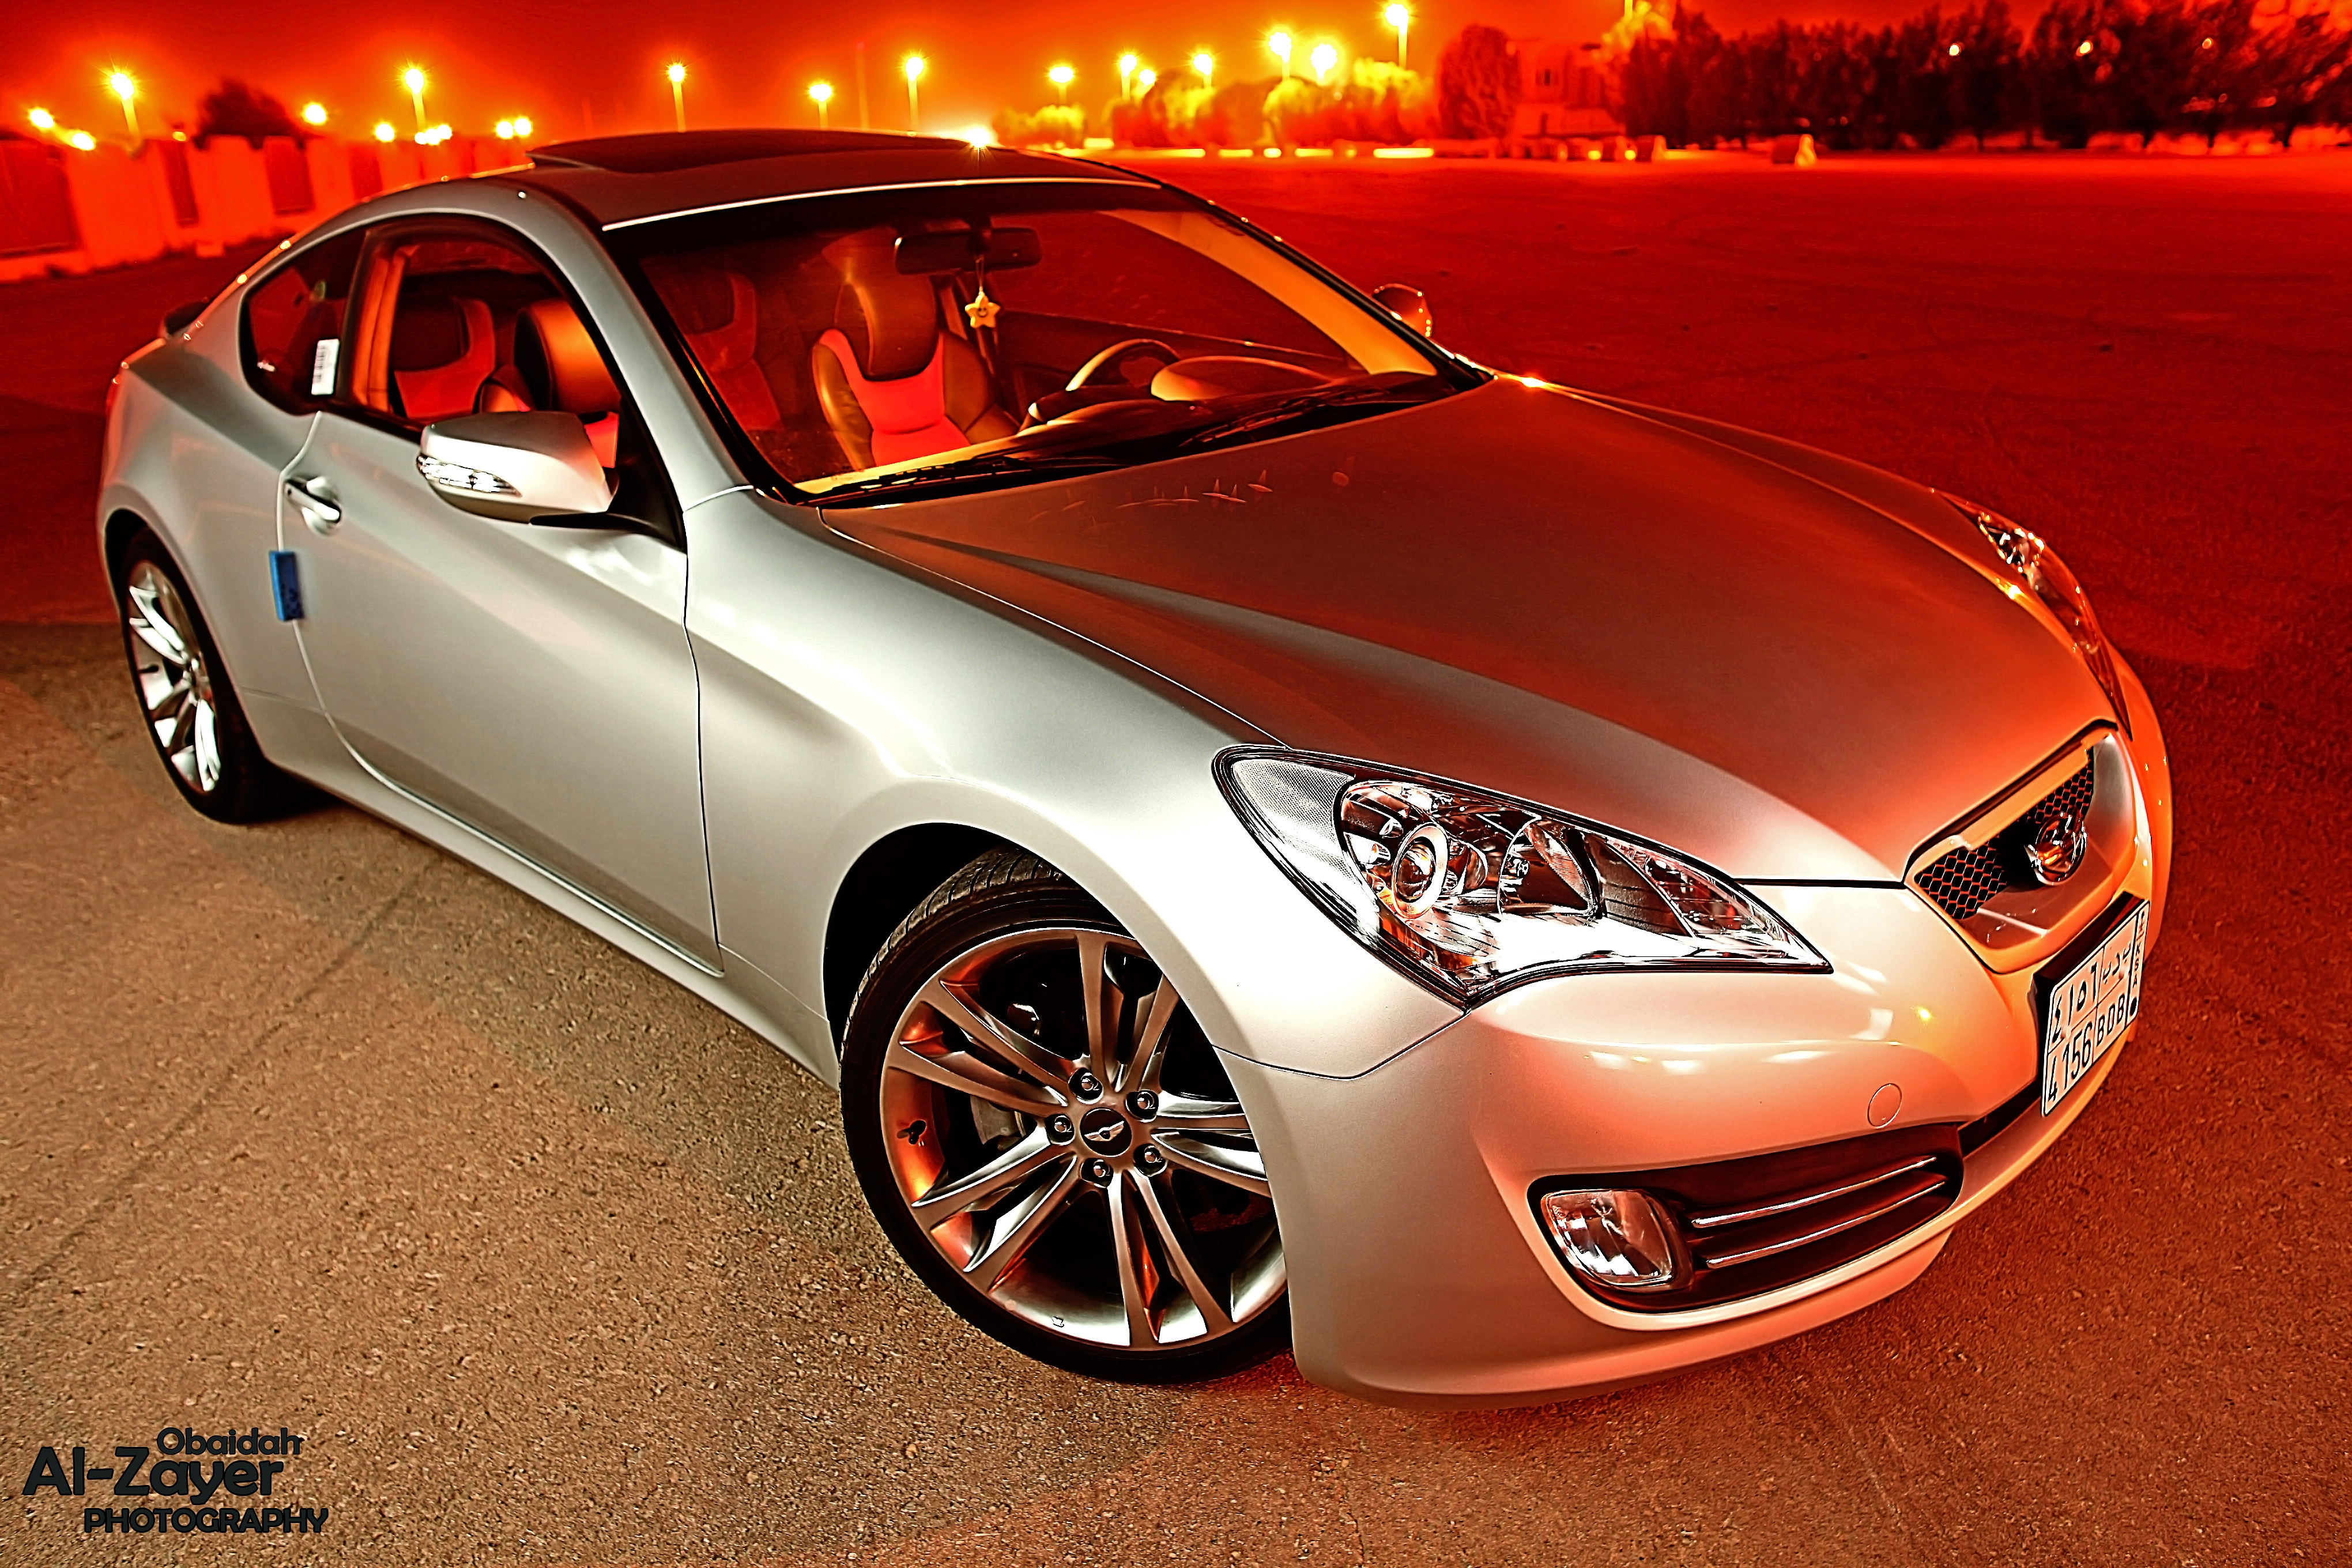 hanali 39 s 2011 hyundai genesis coupe in qatif. Black Bedroom Furniture Sets. Home Design Ideas